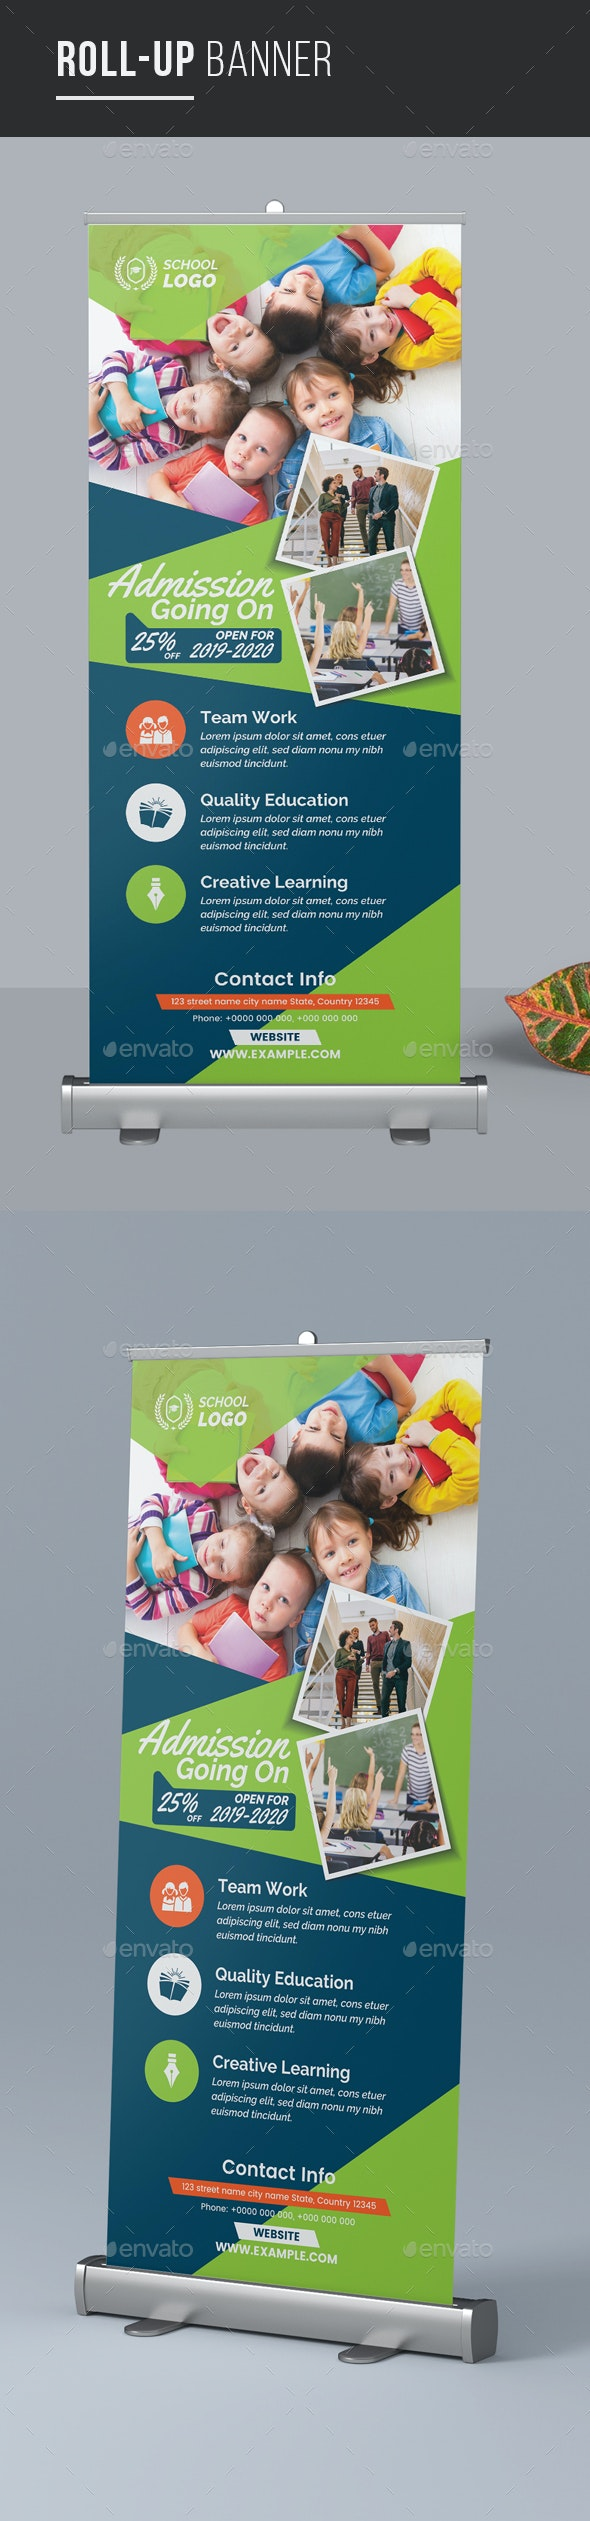 Education Roll-up Banner - Signage Print Templates